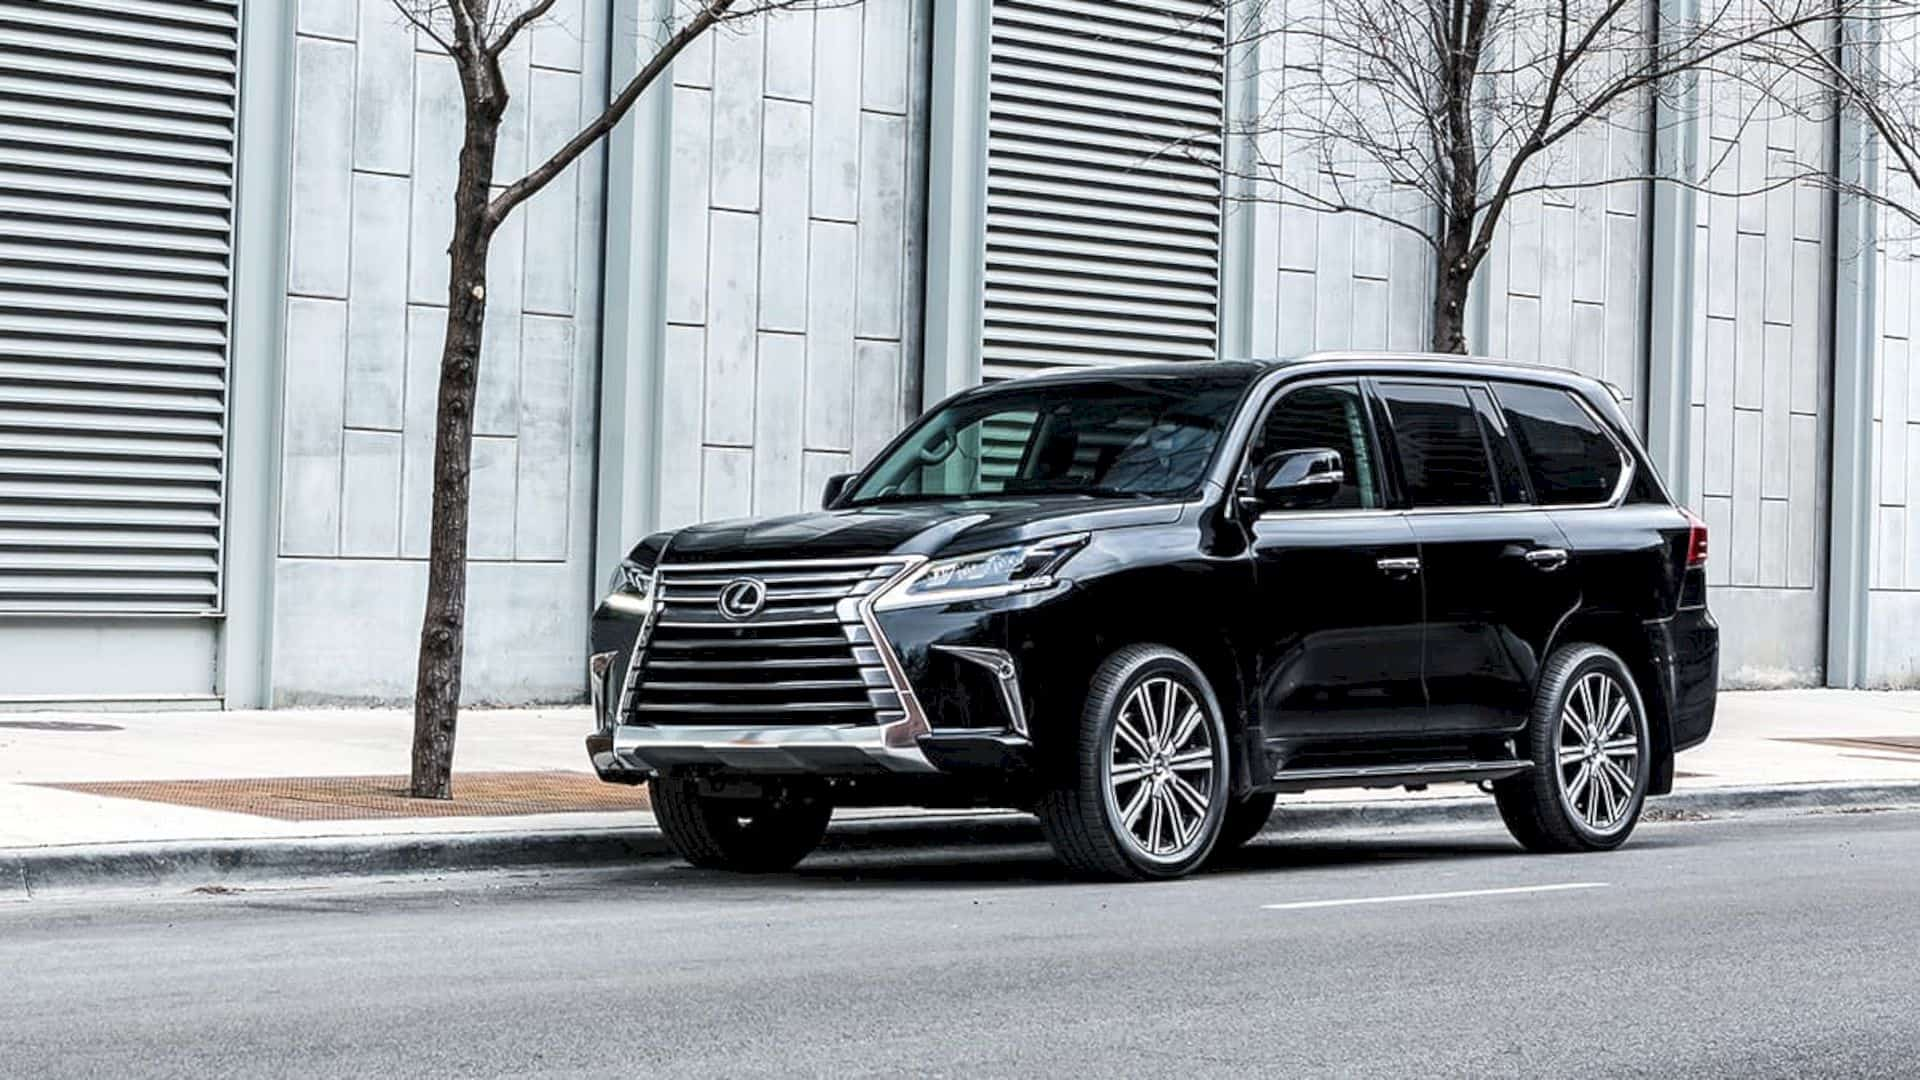 2019 Lexus LX 570: Crafted to Command | Design Listicle